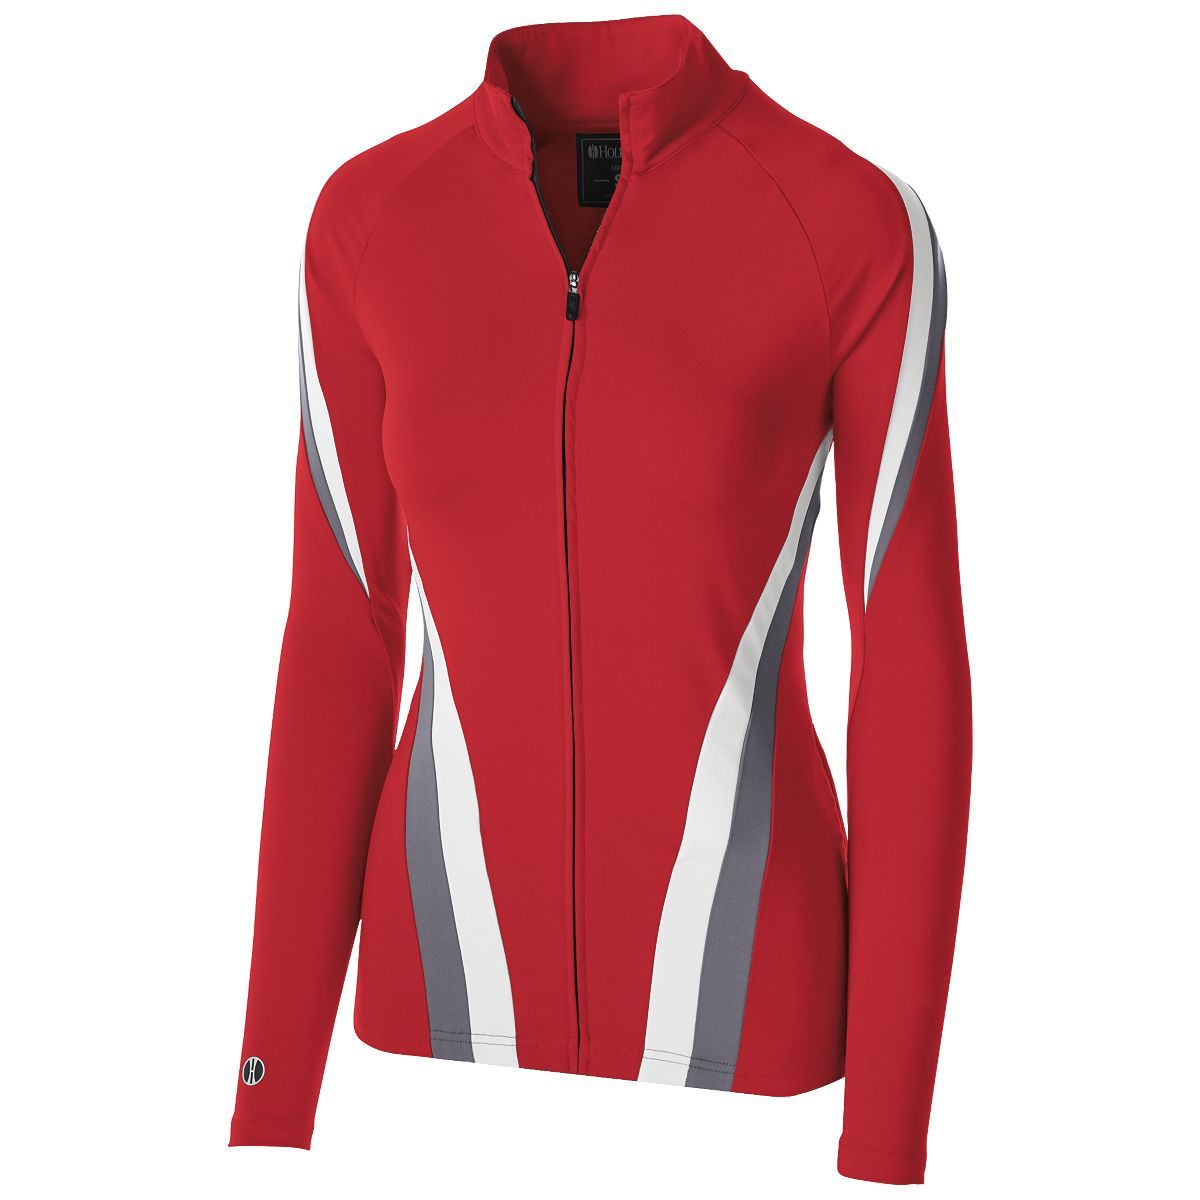 Ladies Aerial Jacket - Scarlet/graphite/white